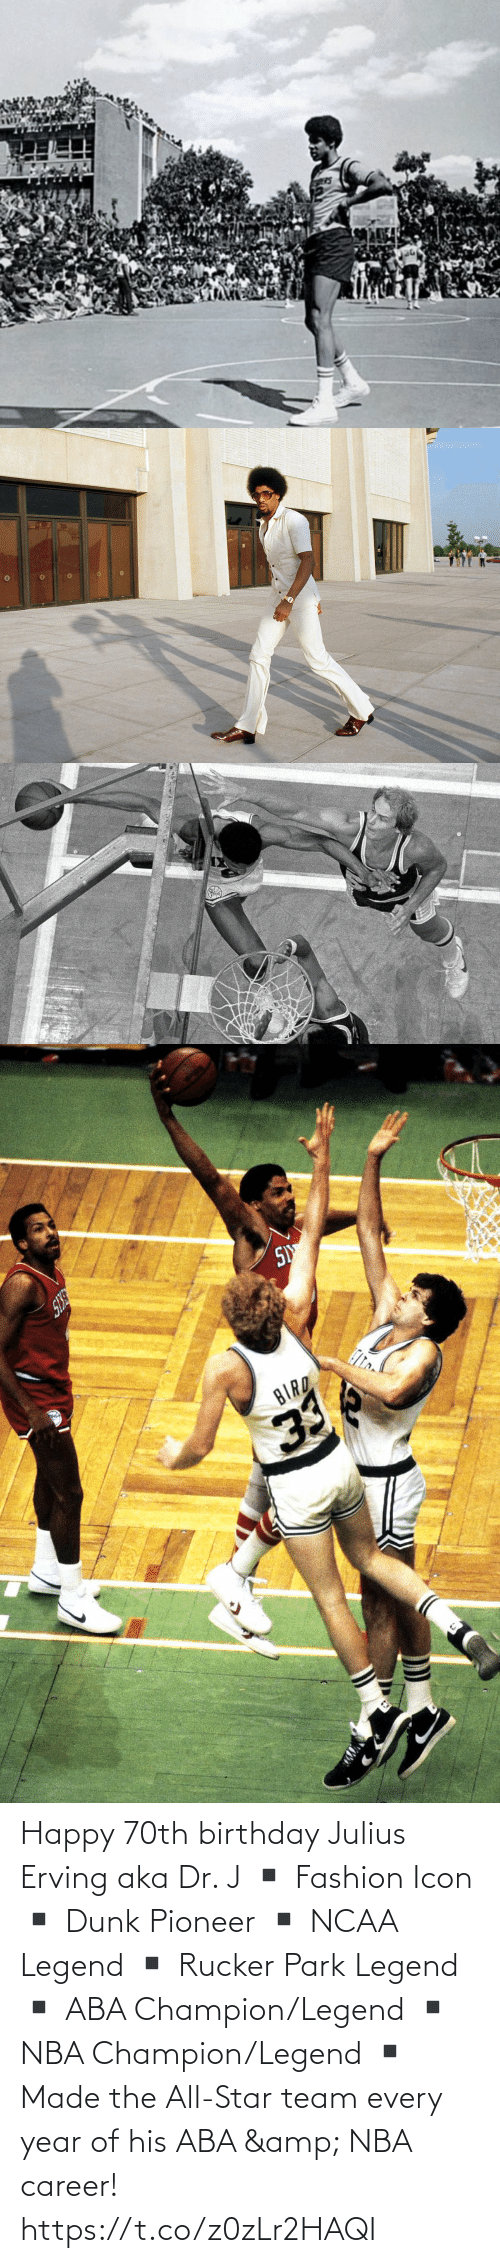 J: Happy 70th birthday Julius Erving aka Dr. J  ▪️ Fashion Icon ▪️ Dunk Pioneer ▪️ NCAA Legend ▪️ Rucker Park Legend ▪️ ABA Champion/Legend ▪️ NBA Champion/Legend ▪️ Made the All-Star team every year of his ABA & NBA career! https://t.co/z0zLr2HAQI